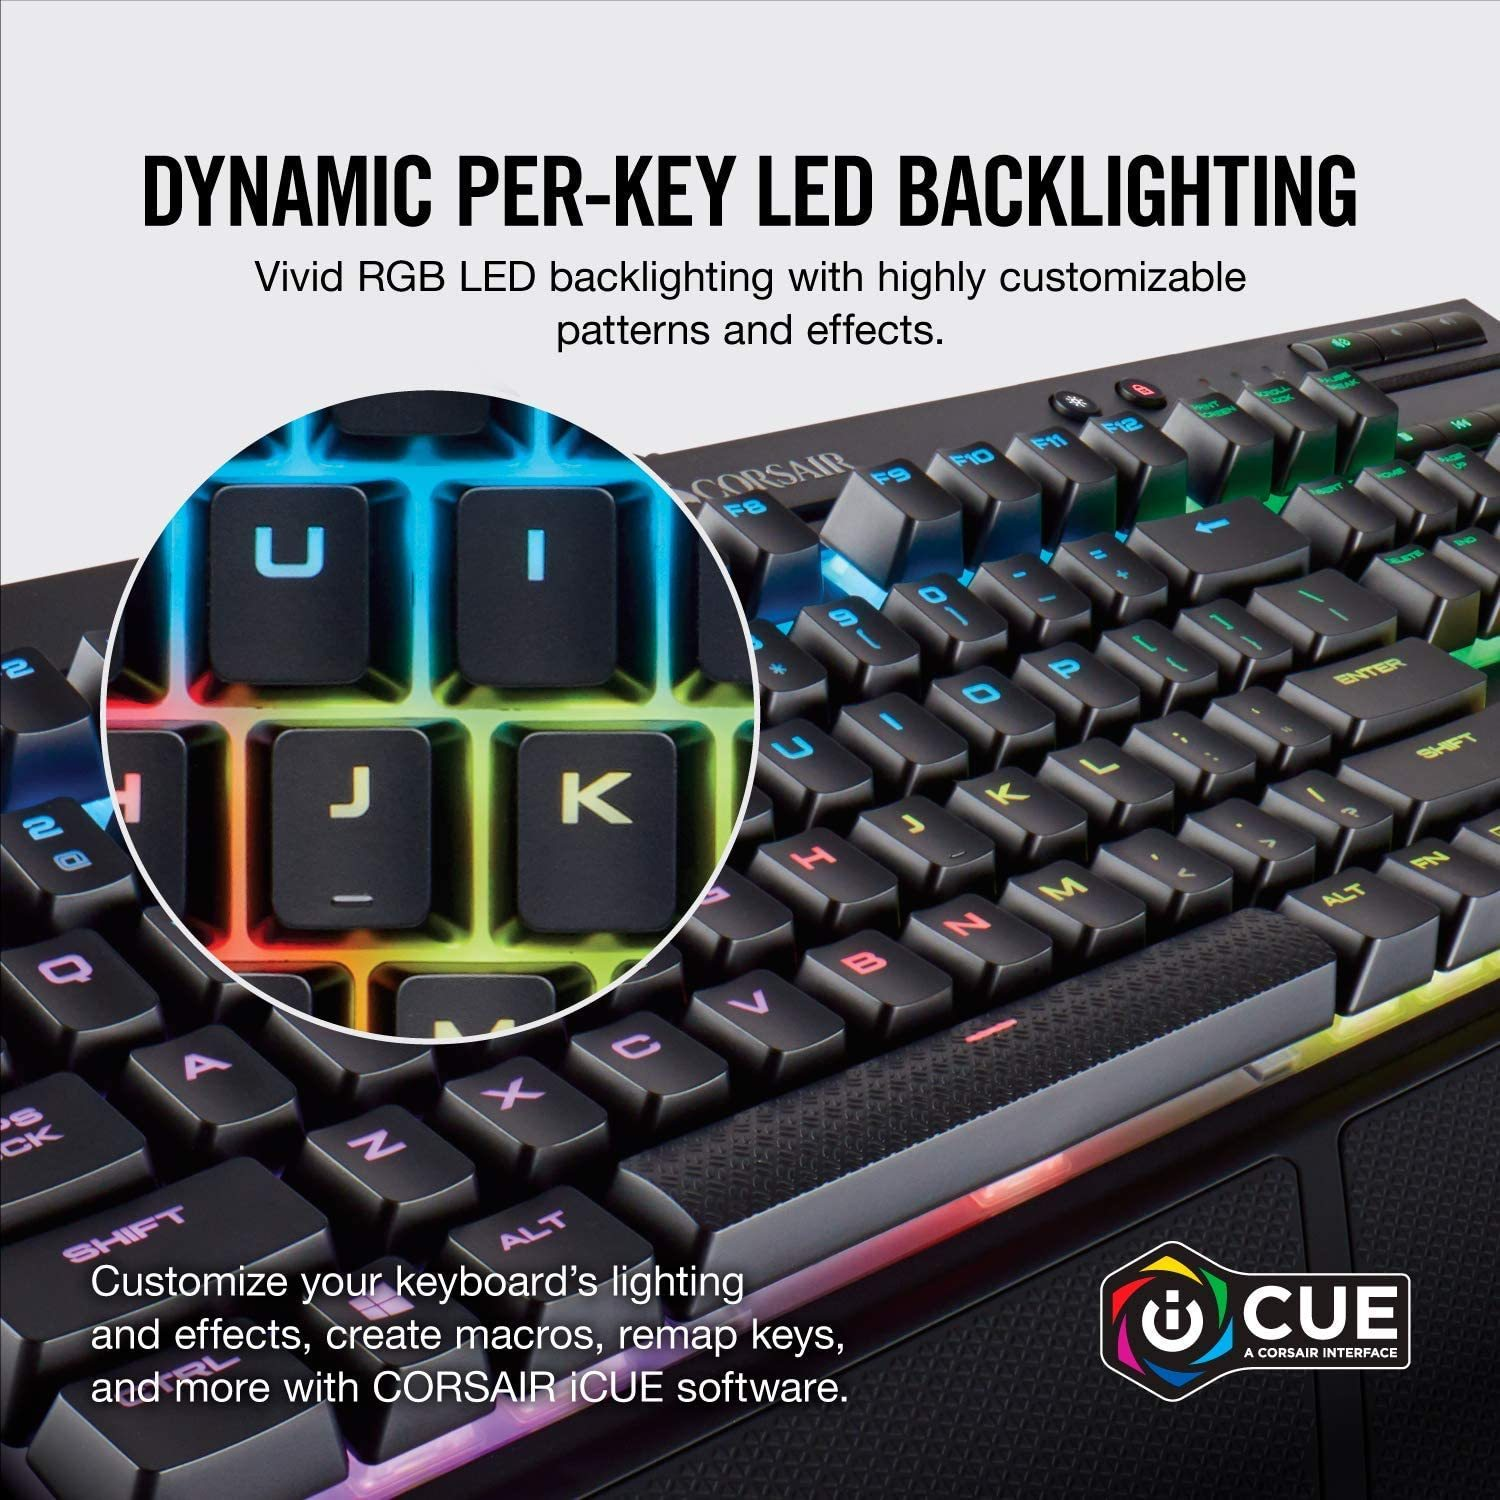 K68 RGB Mechanical Gaming Keyboard, Backlit RGB LED, Dust and Spill Resistant - Linear & Quiet - Cherry MX Red